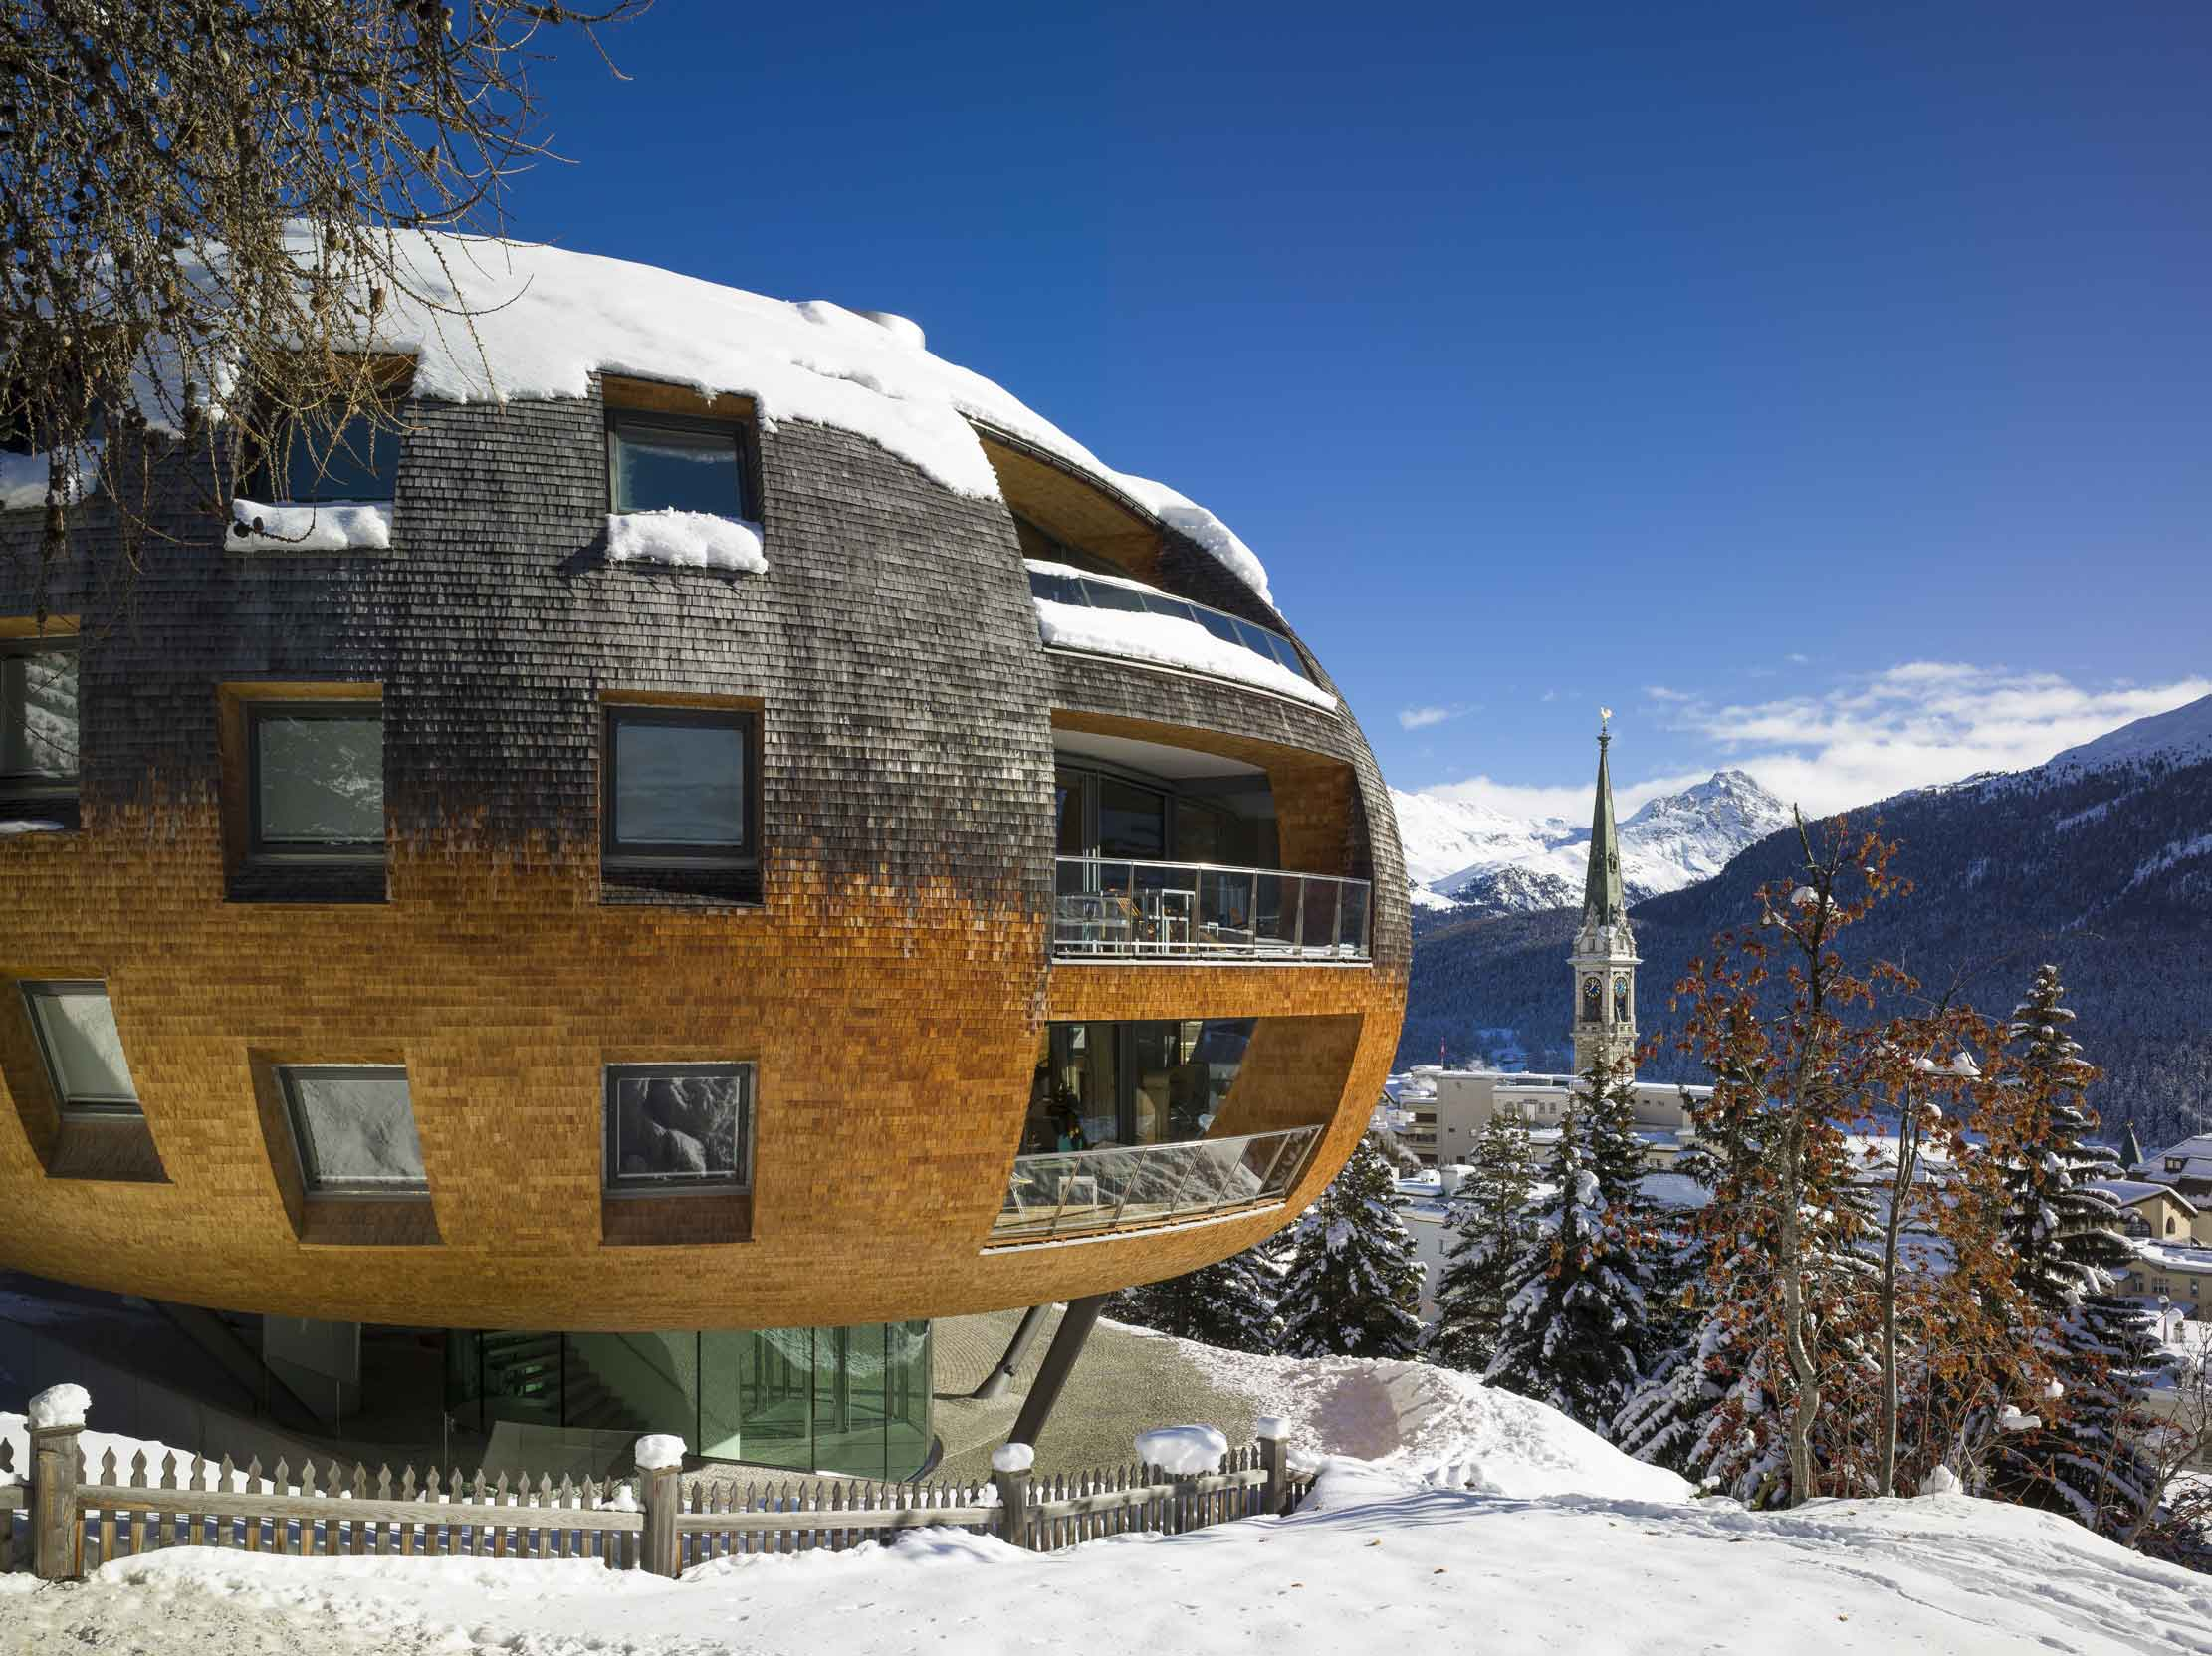 This über-chic apartment offers a bird's-eye view of St. Moritz from its coveted location in the Sir Norman Foster-designed Chesa Futura residences.